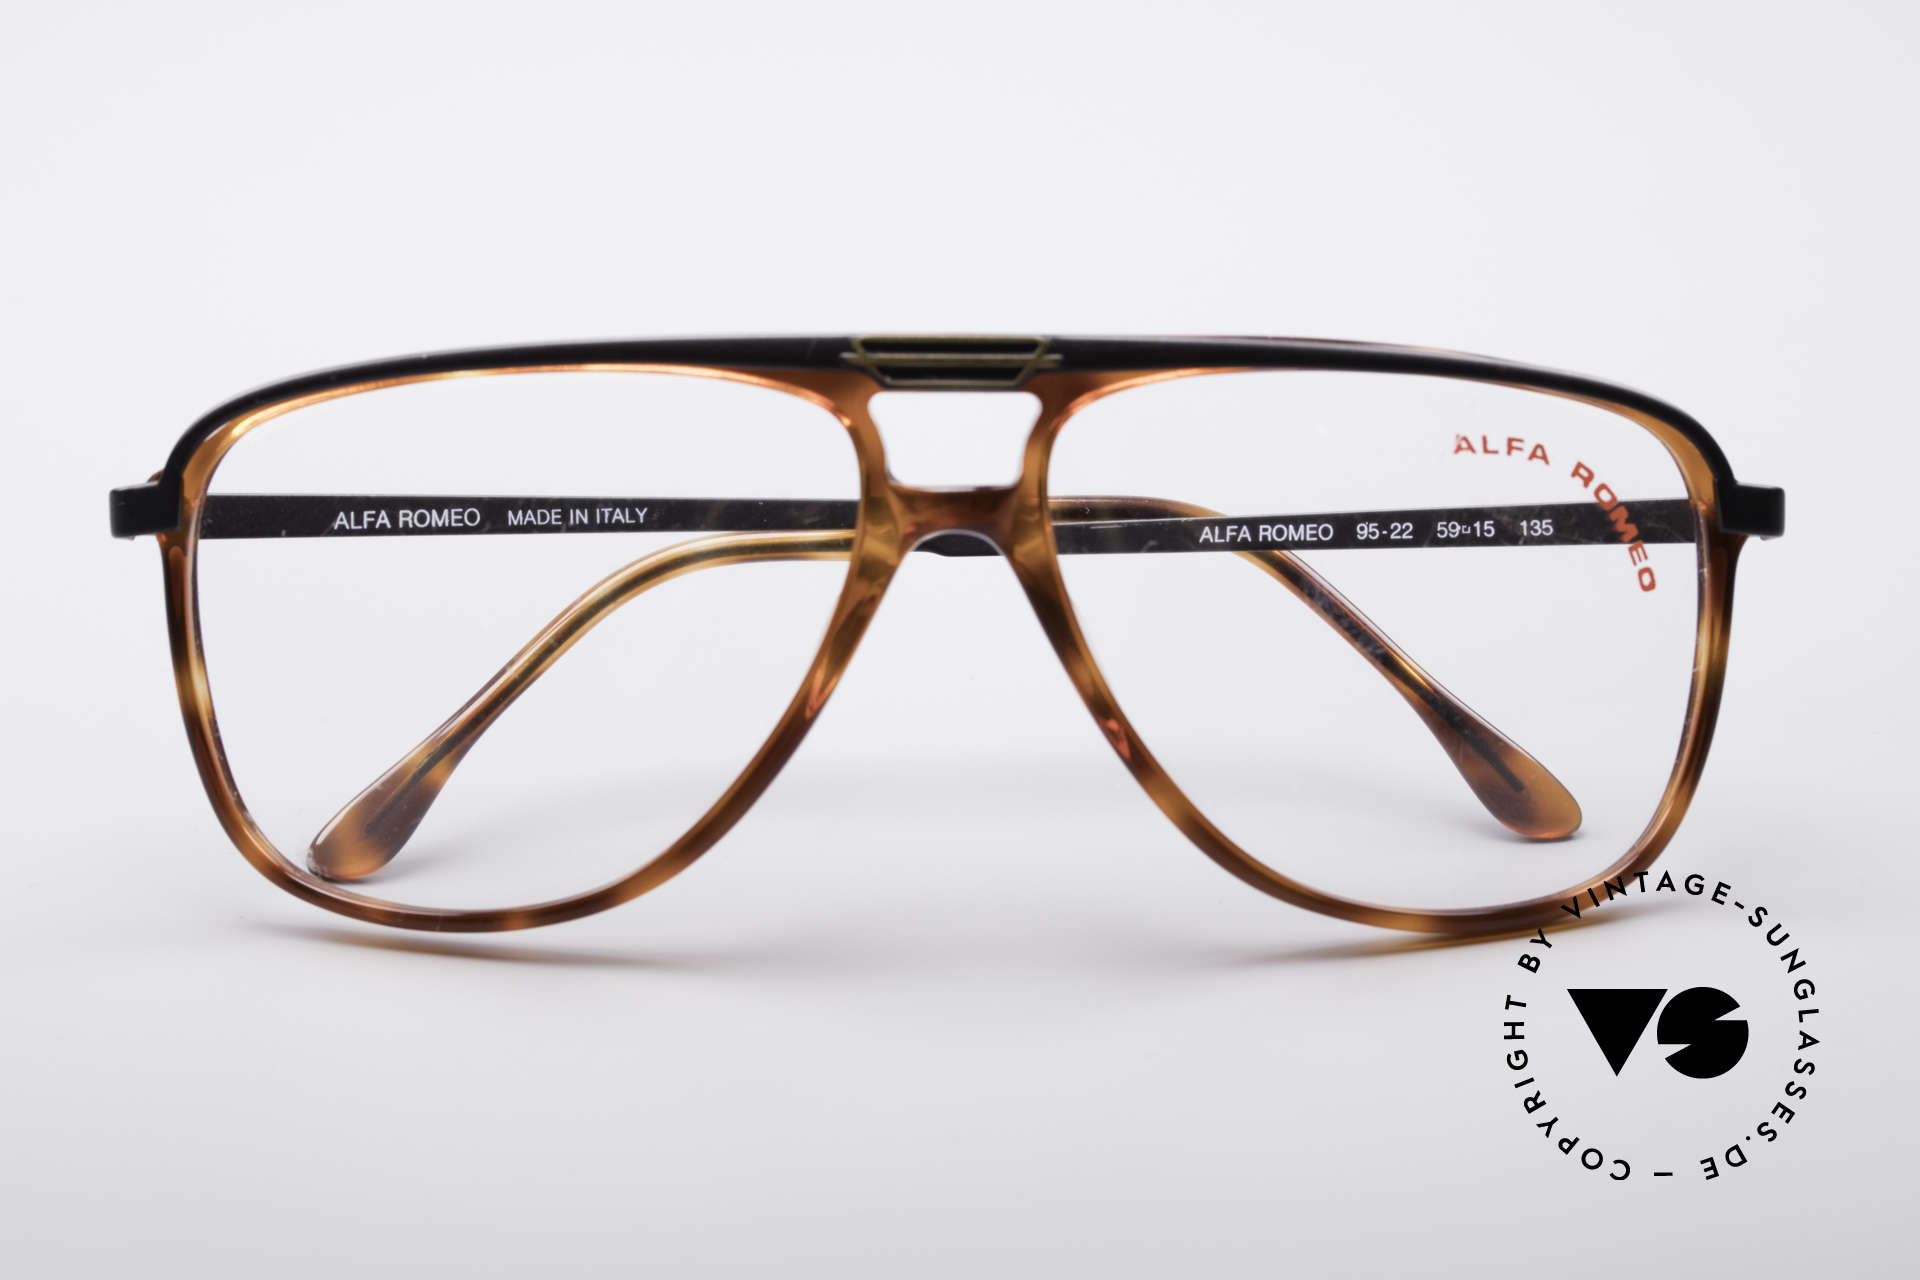 Alfa Romeo 95-22 Alfisti Vintage Frame, never worn (like all our rare 80's Alfa Romeo eyewear), Made for Men